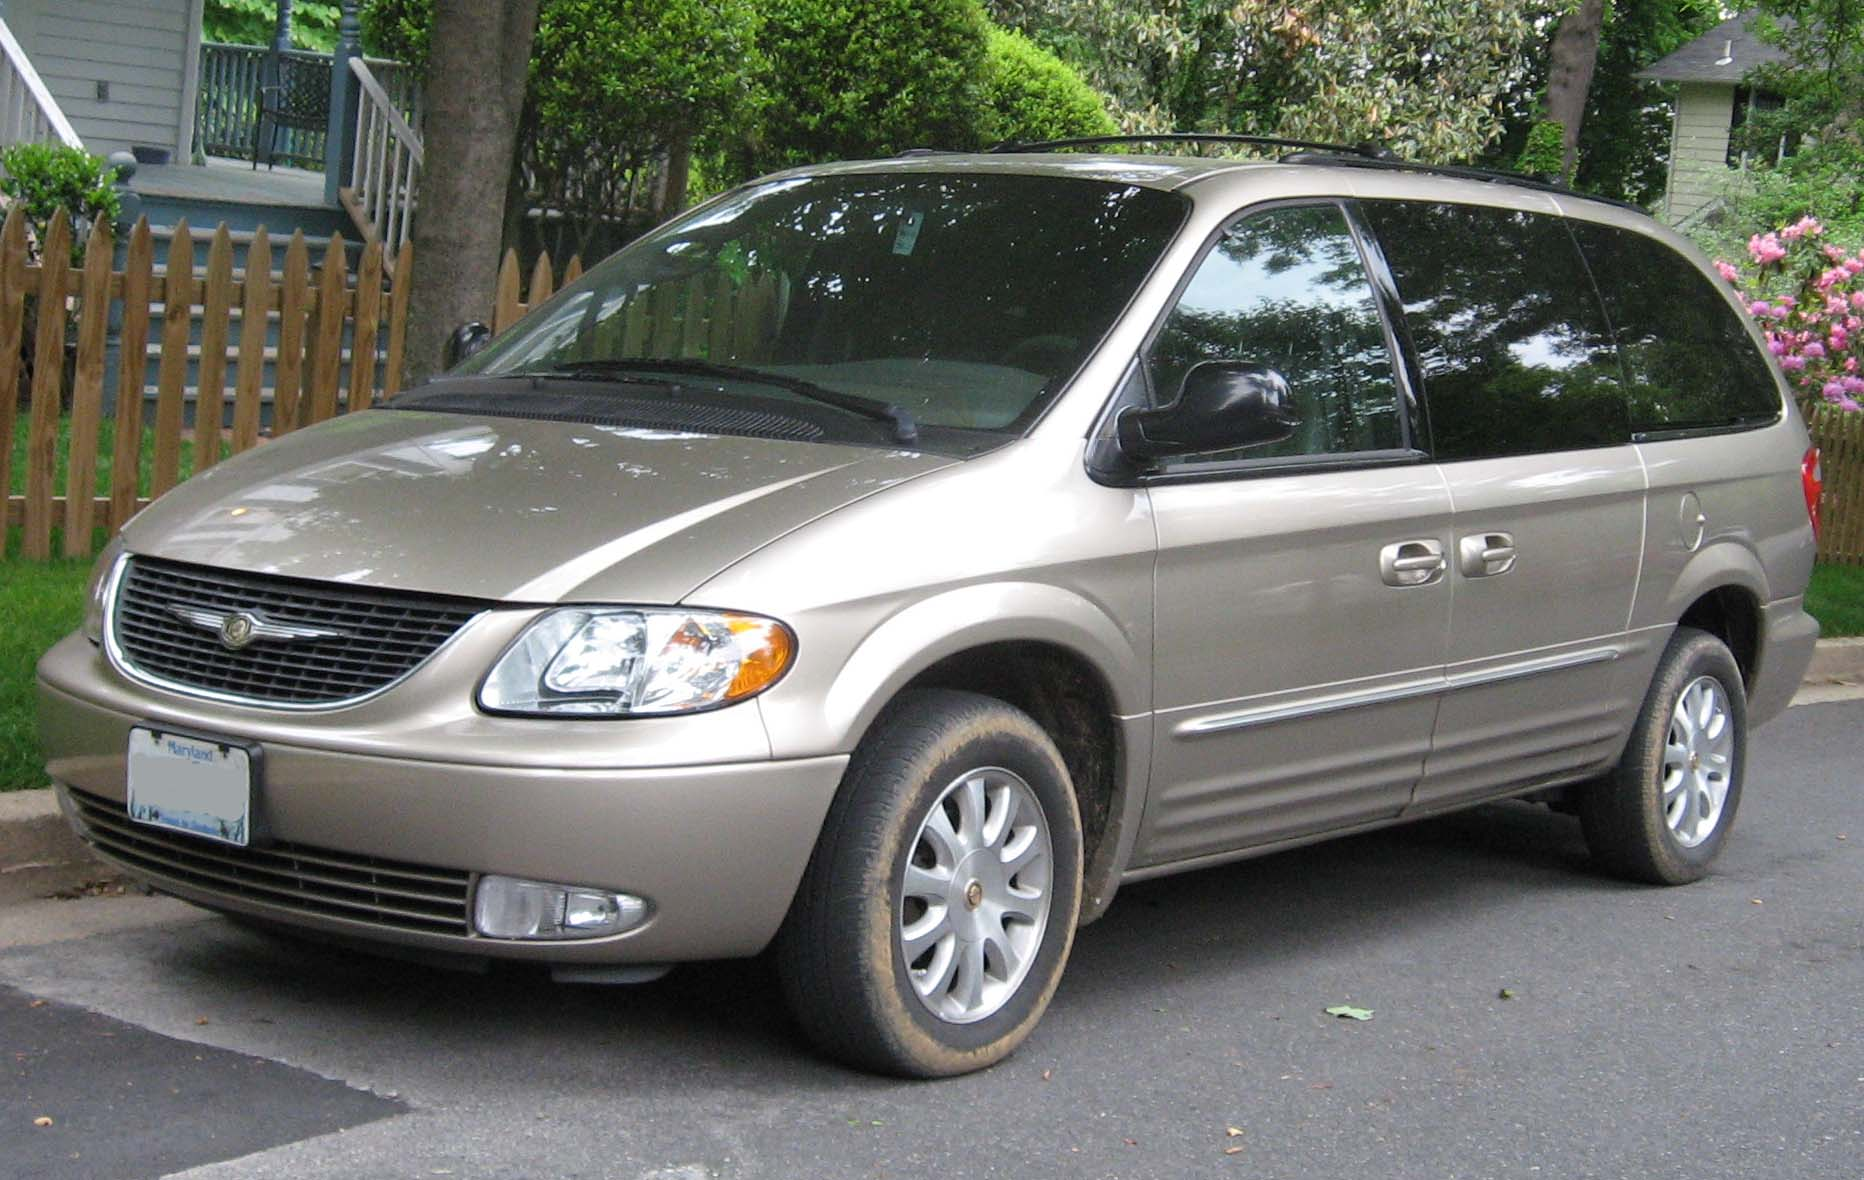 Chrysler lxi photo - 1